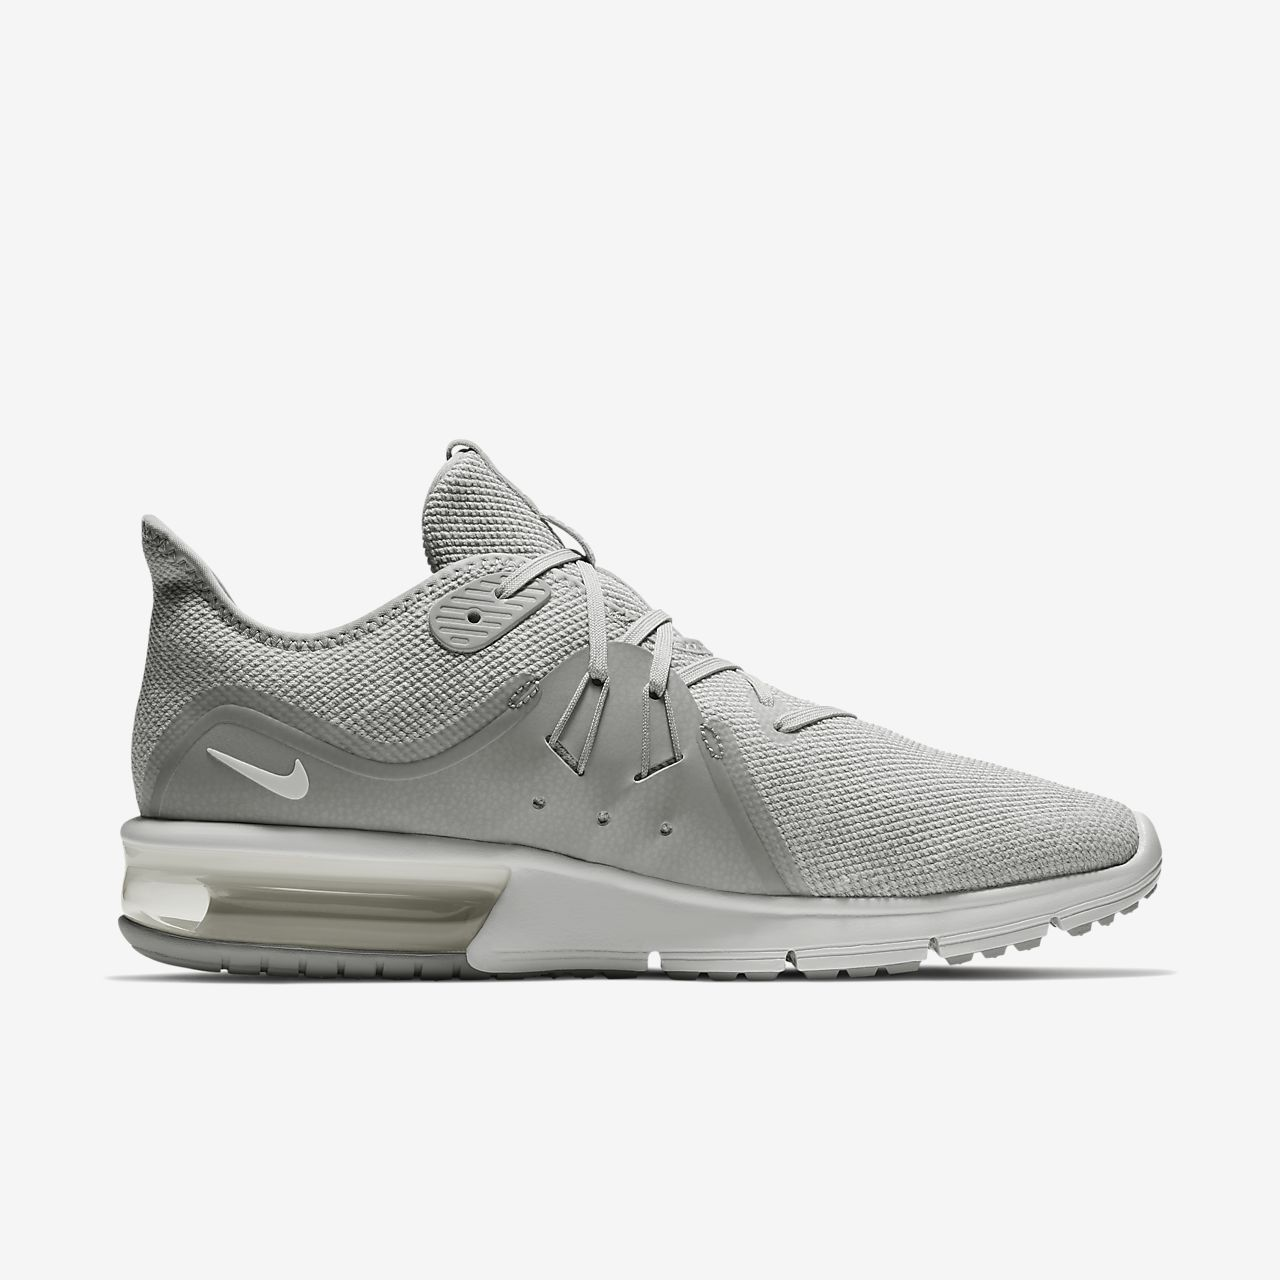 Chaussures Homme Nike Performance Air Max Sequent 3 Running